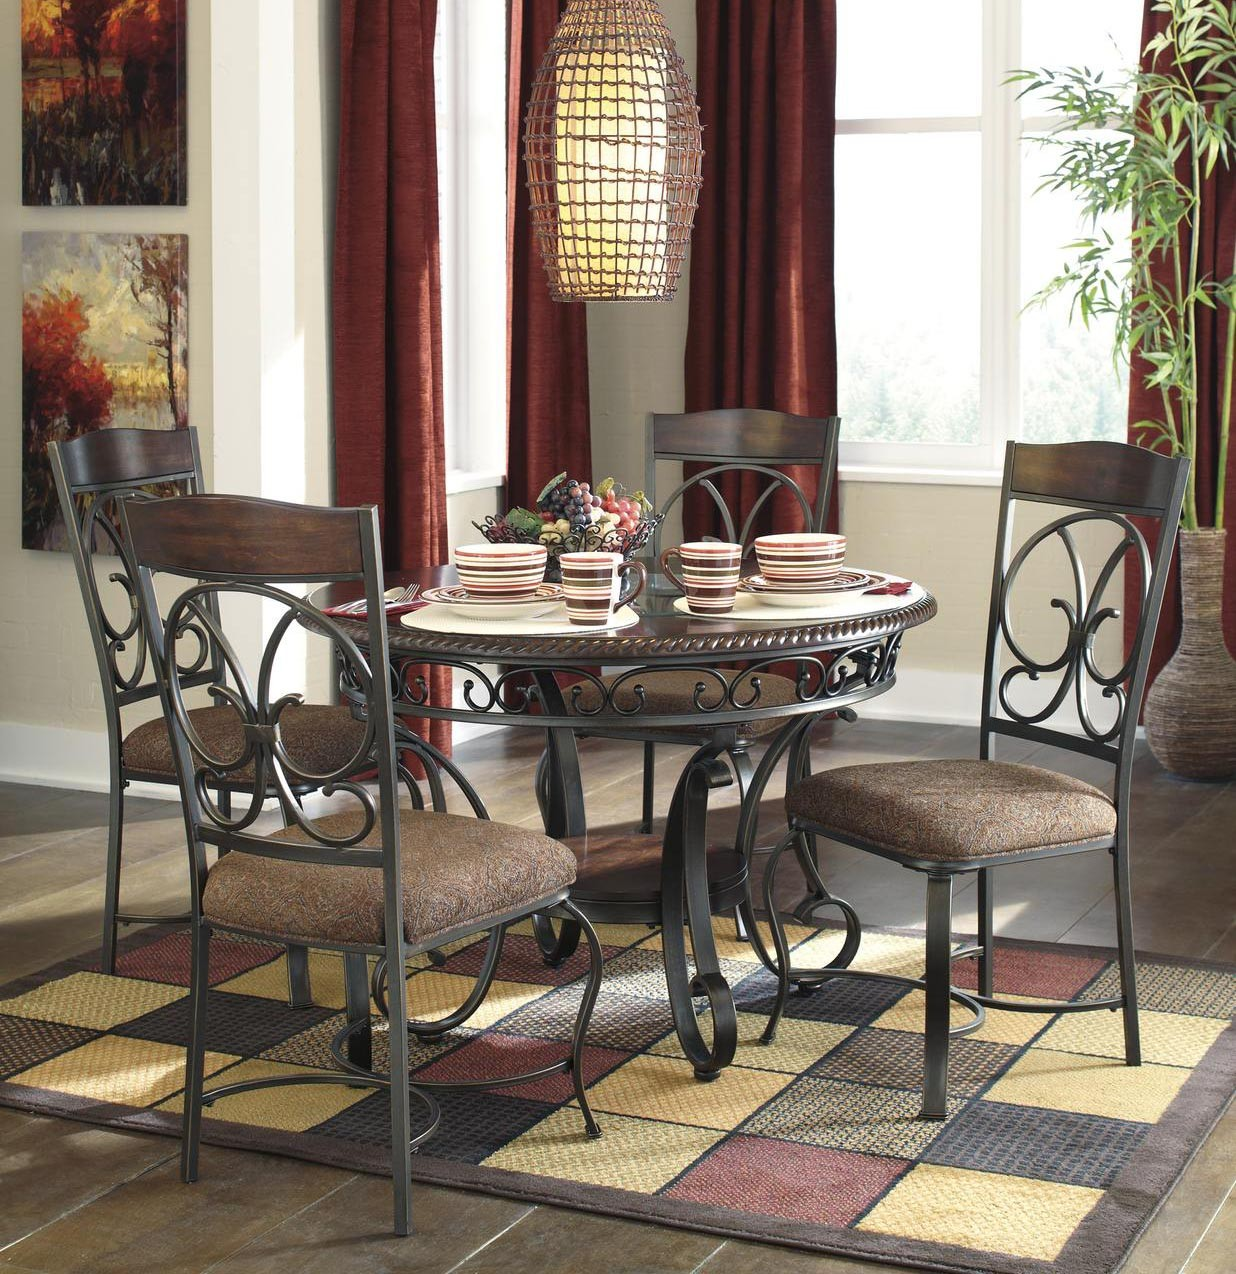 Signature Design By Ashley Glambrey Brown 5 Piece Dining Room Set Marjen Of Chicago Chicago